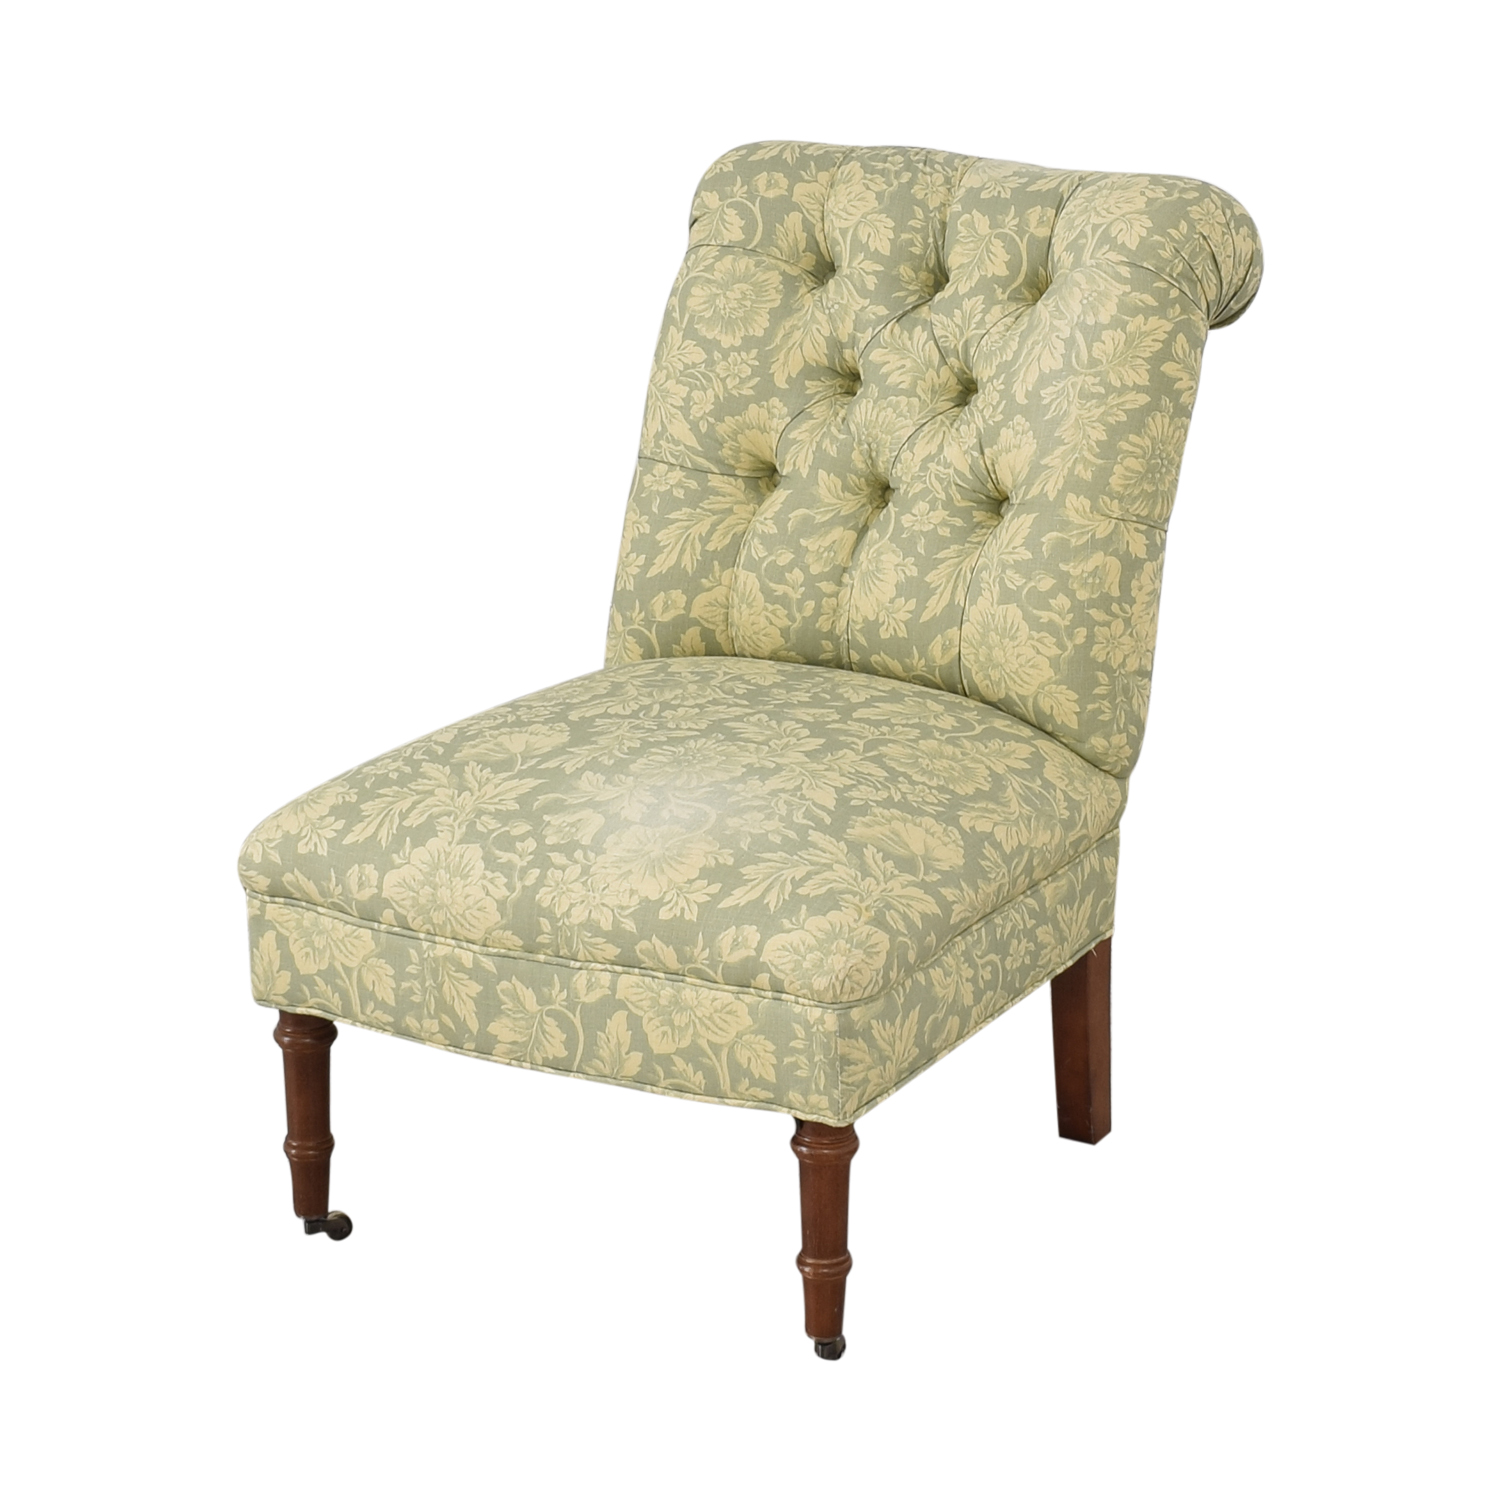 Lee Industries Lee Industries Armless Tufted Chair on sale